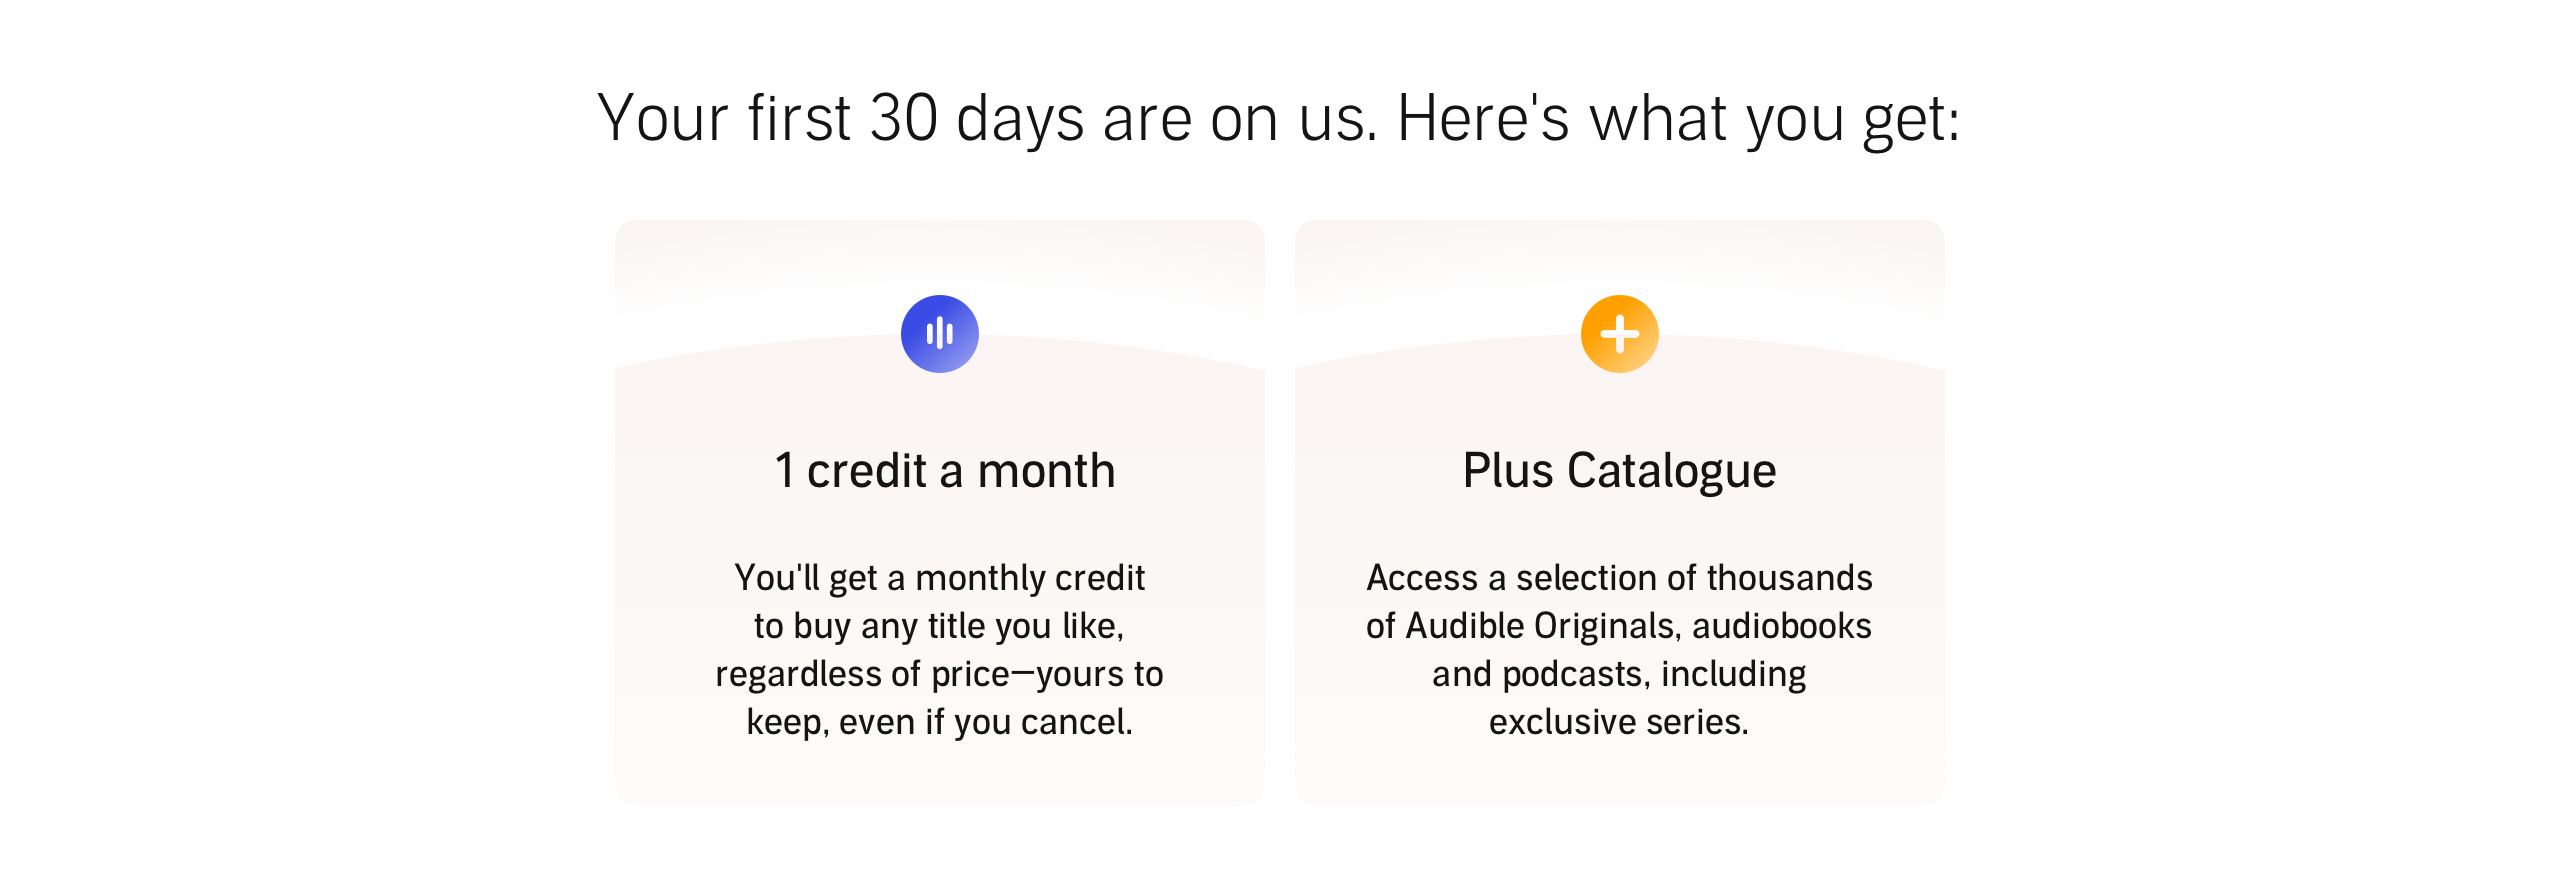 What's included Each Month? Audible members gets 1 credit a month and access to the entire Plus Catalogue.